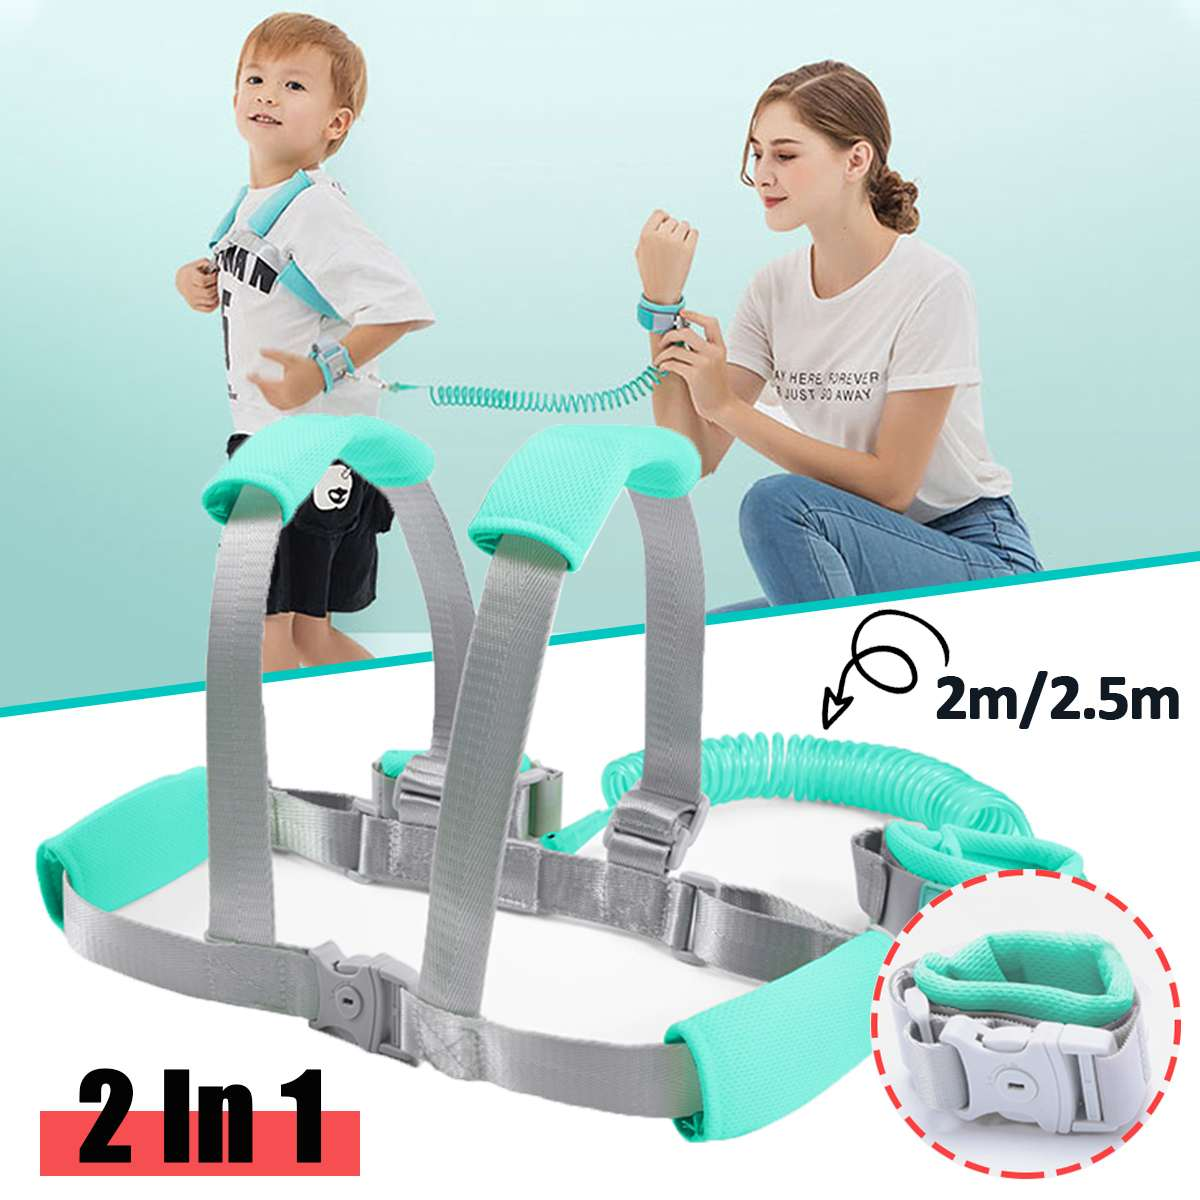 Toddler Anti Lost Safety Wrist Link Kids Reflective Anti-lost Walking Harness Baby Harness Safety Leash Toddler Safety Harness